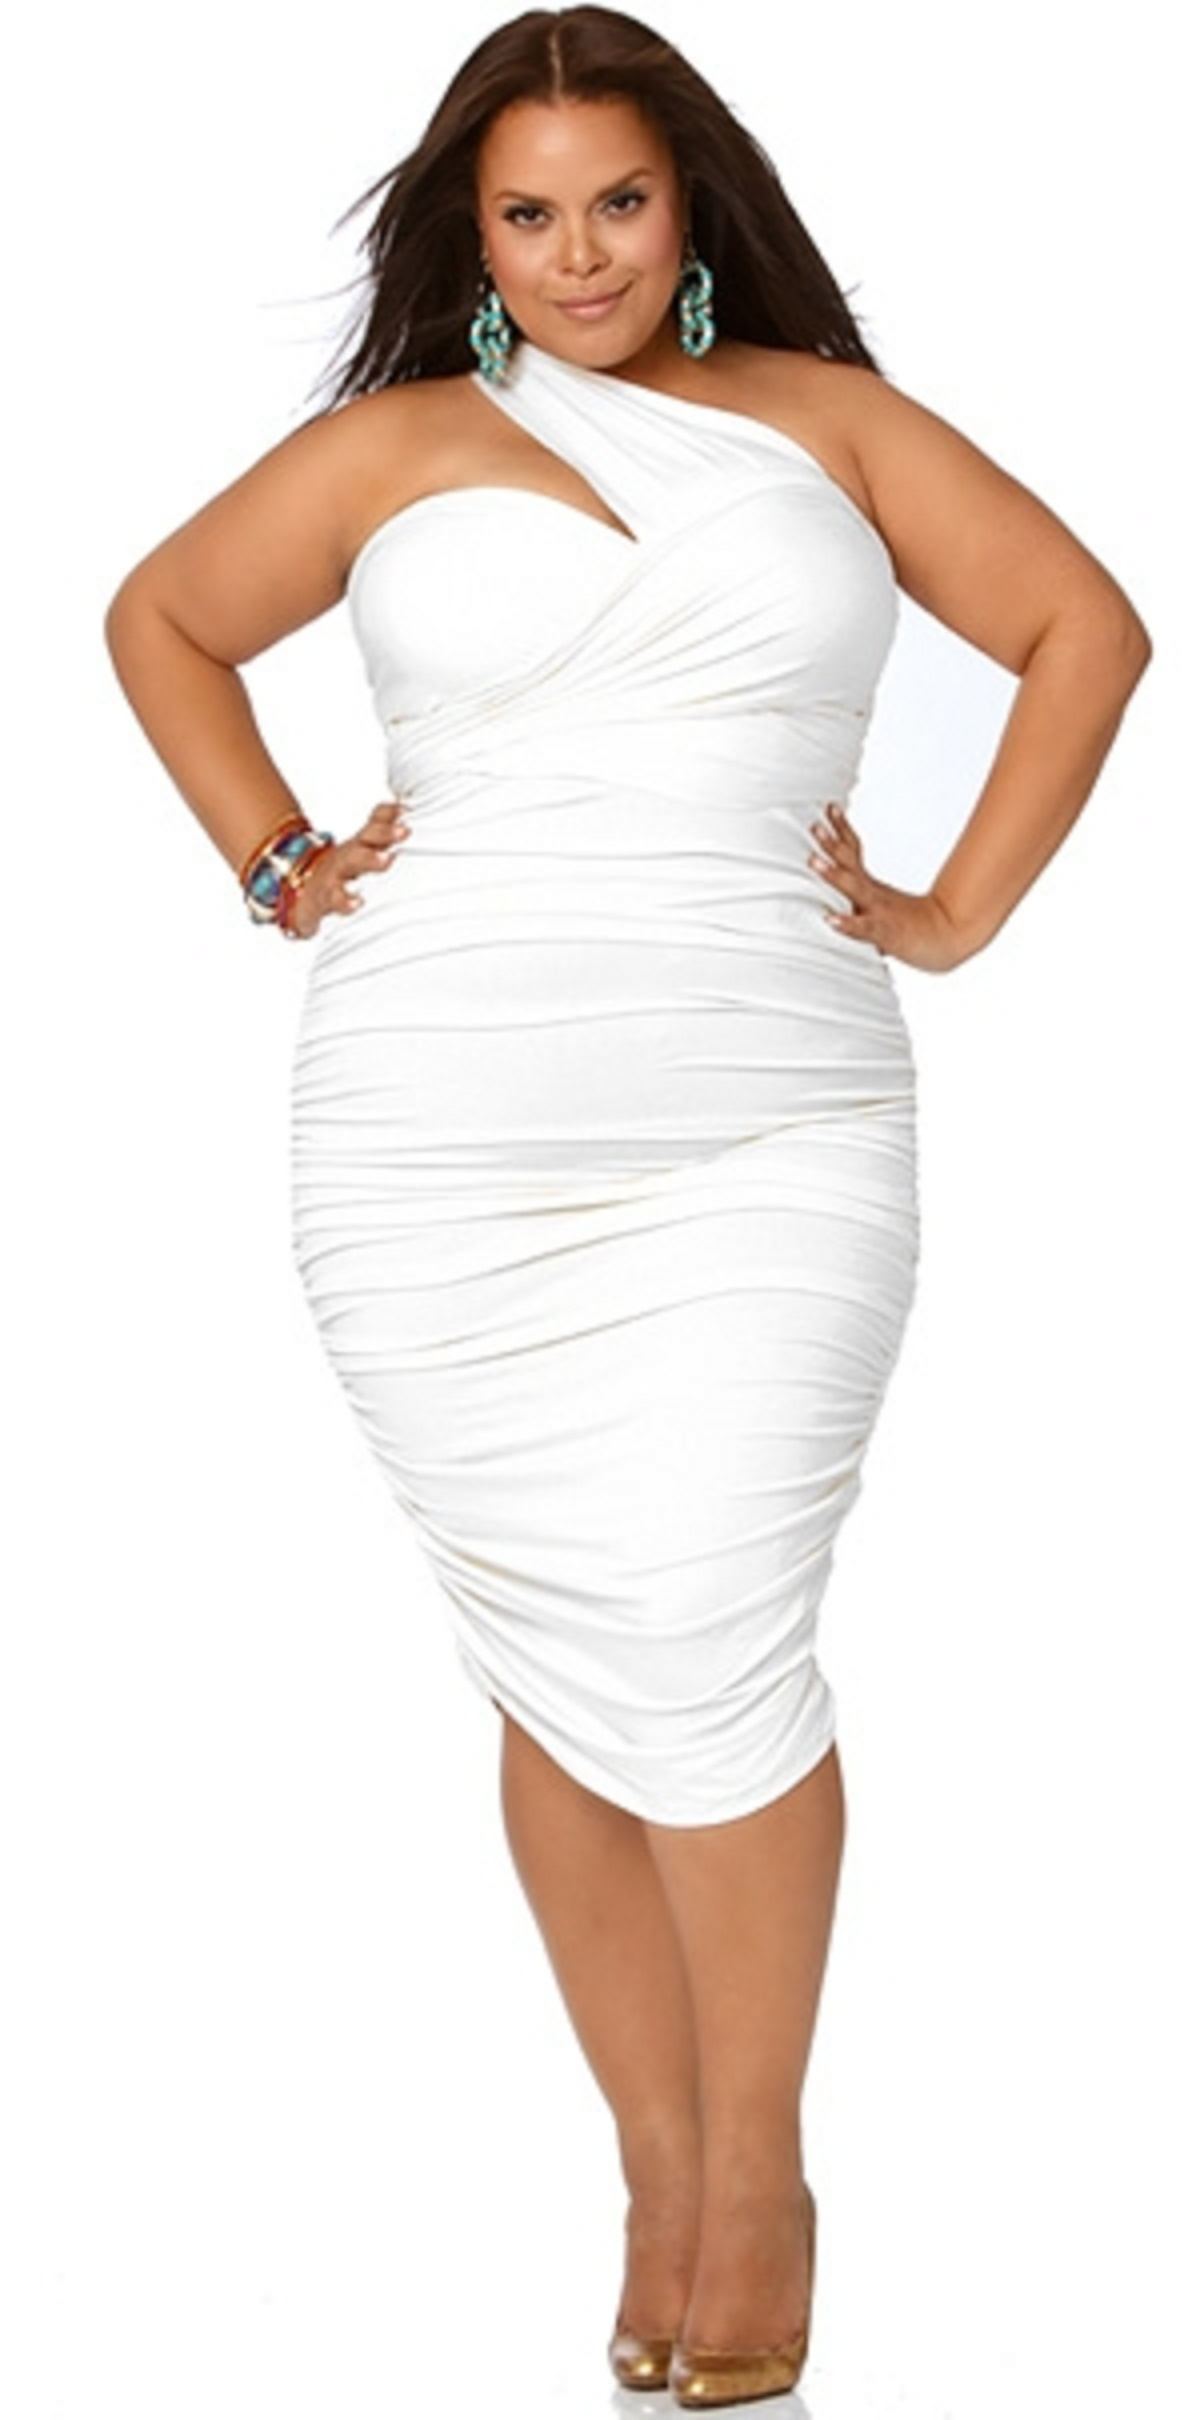 trendy white plus size dresses photo - 1 bygvgxo